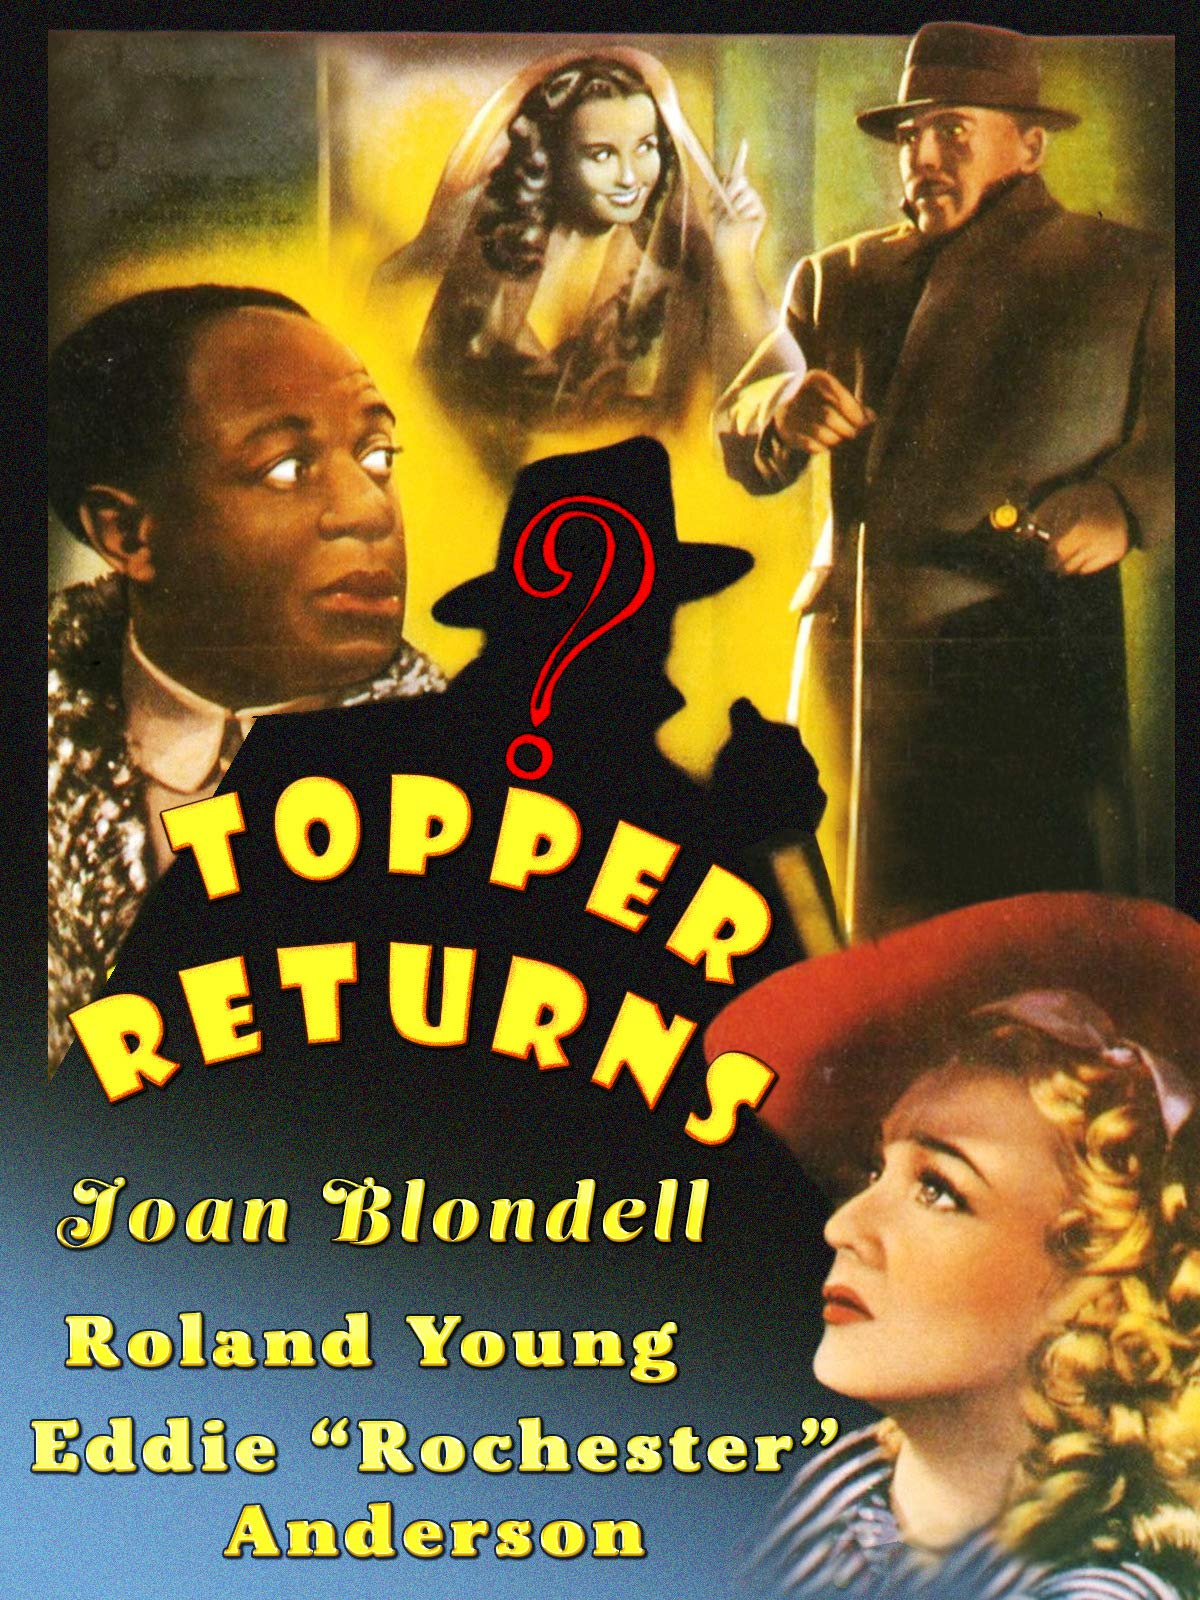 """Topper Returns - Joan Blondell, Roland Young, Eddie """"Rochester"""" Anderson"""